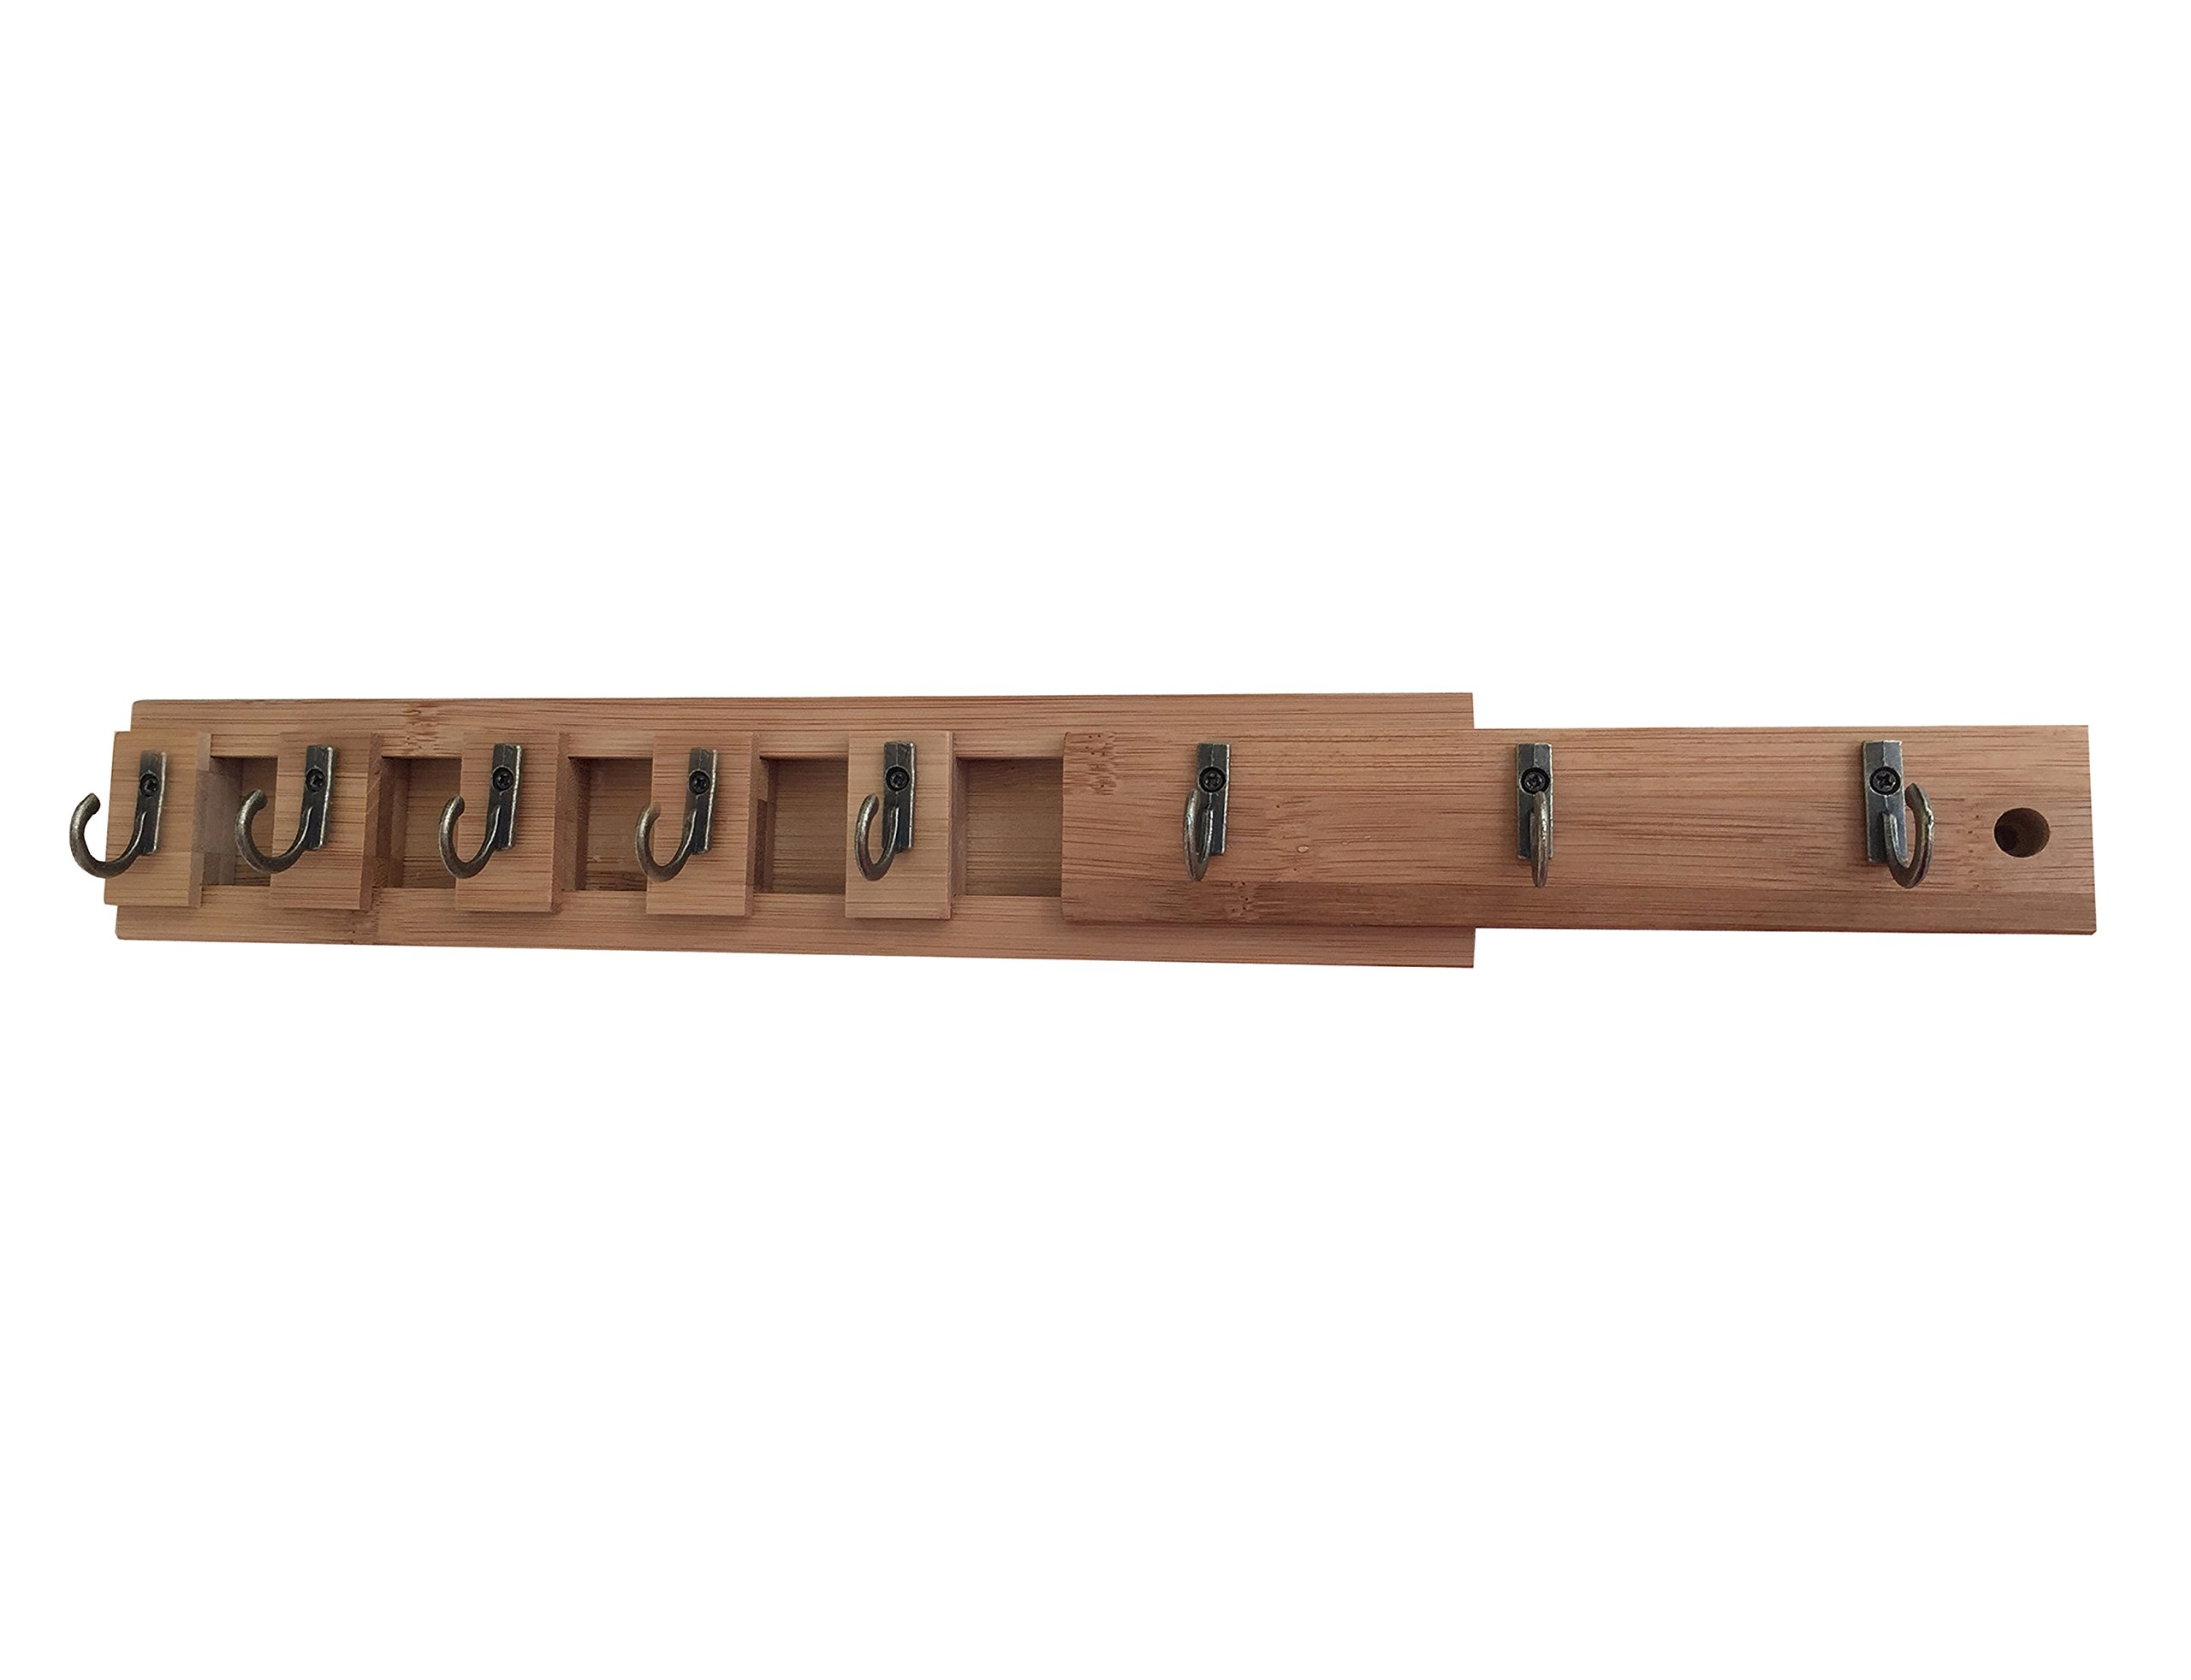 New and Improved Wood Expandable Cabinet Organizer with 8 Heavy Duty Hooks